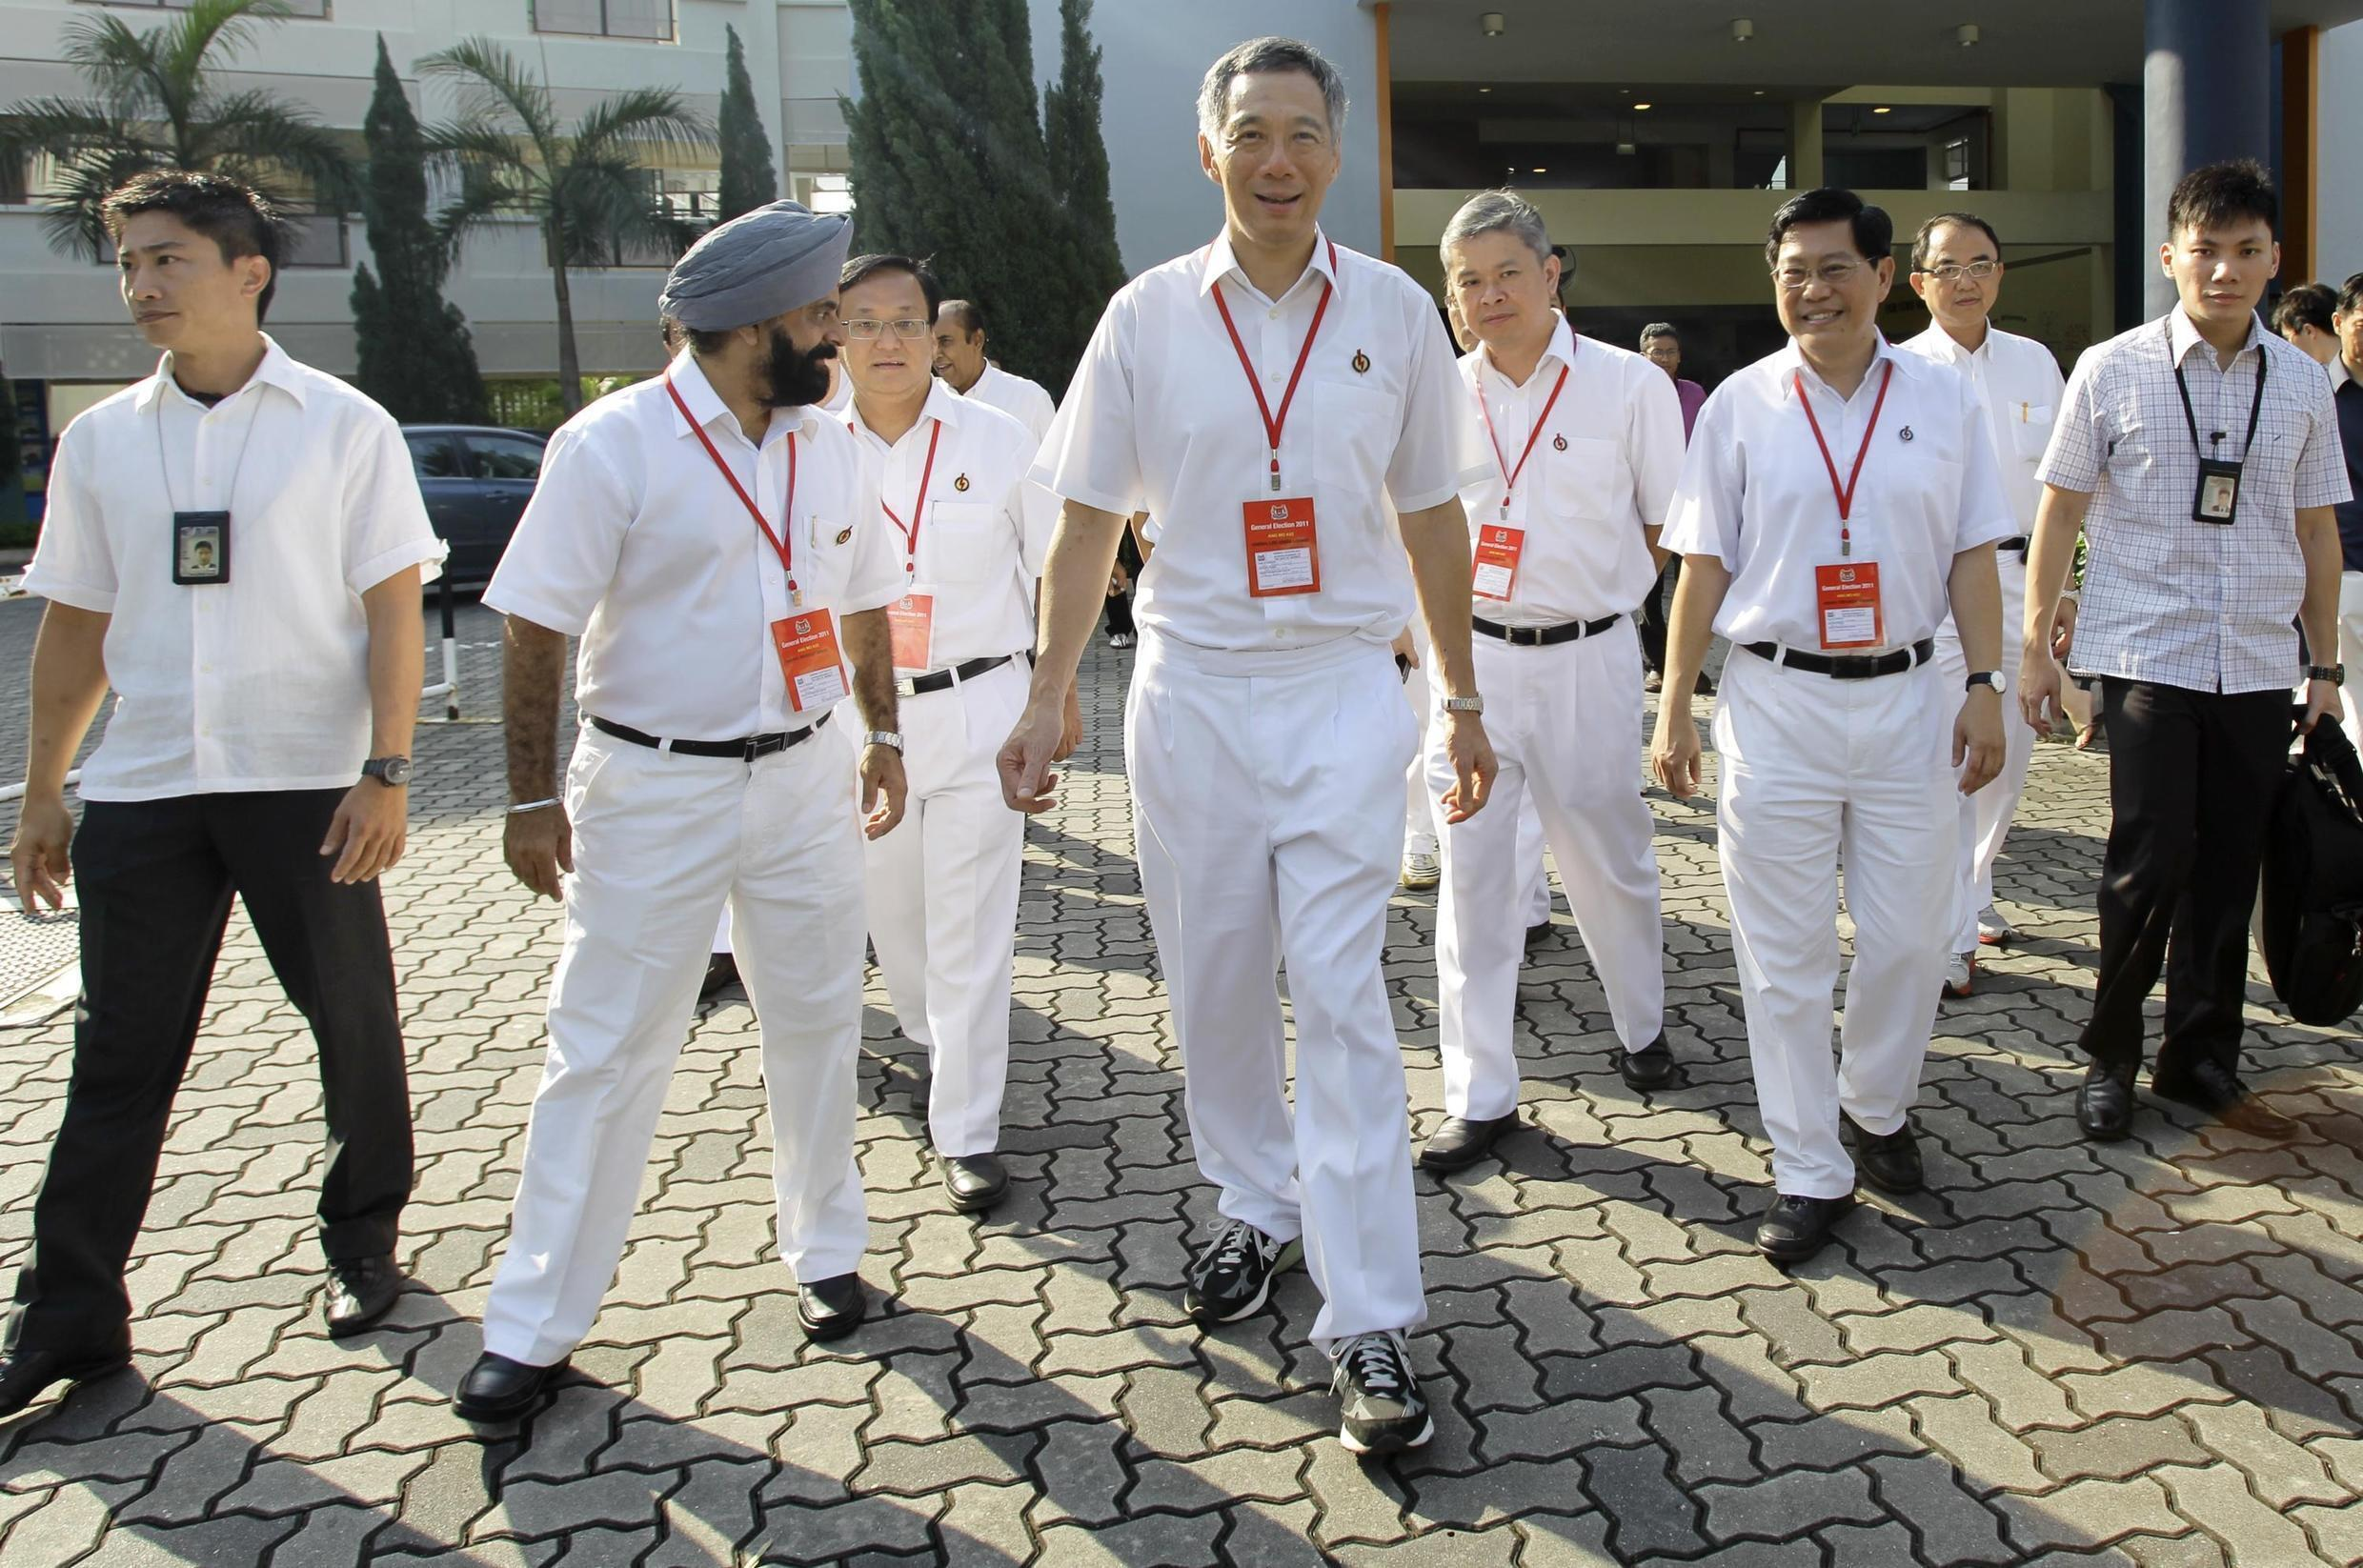 Singapore's Prime Minister Lee Hsien Loong (C) and other PAP candidates at a polling station on Saturday